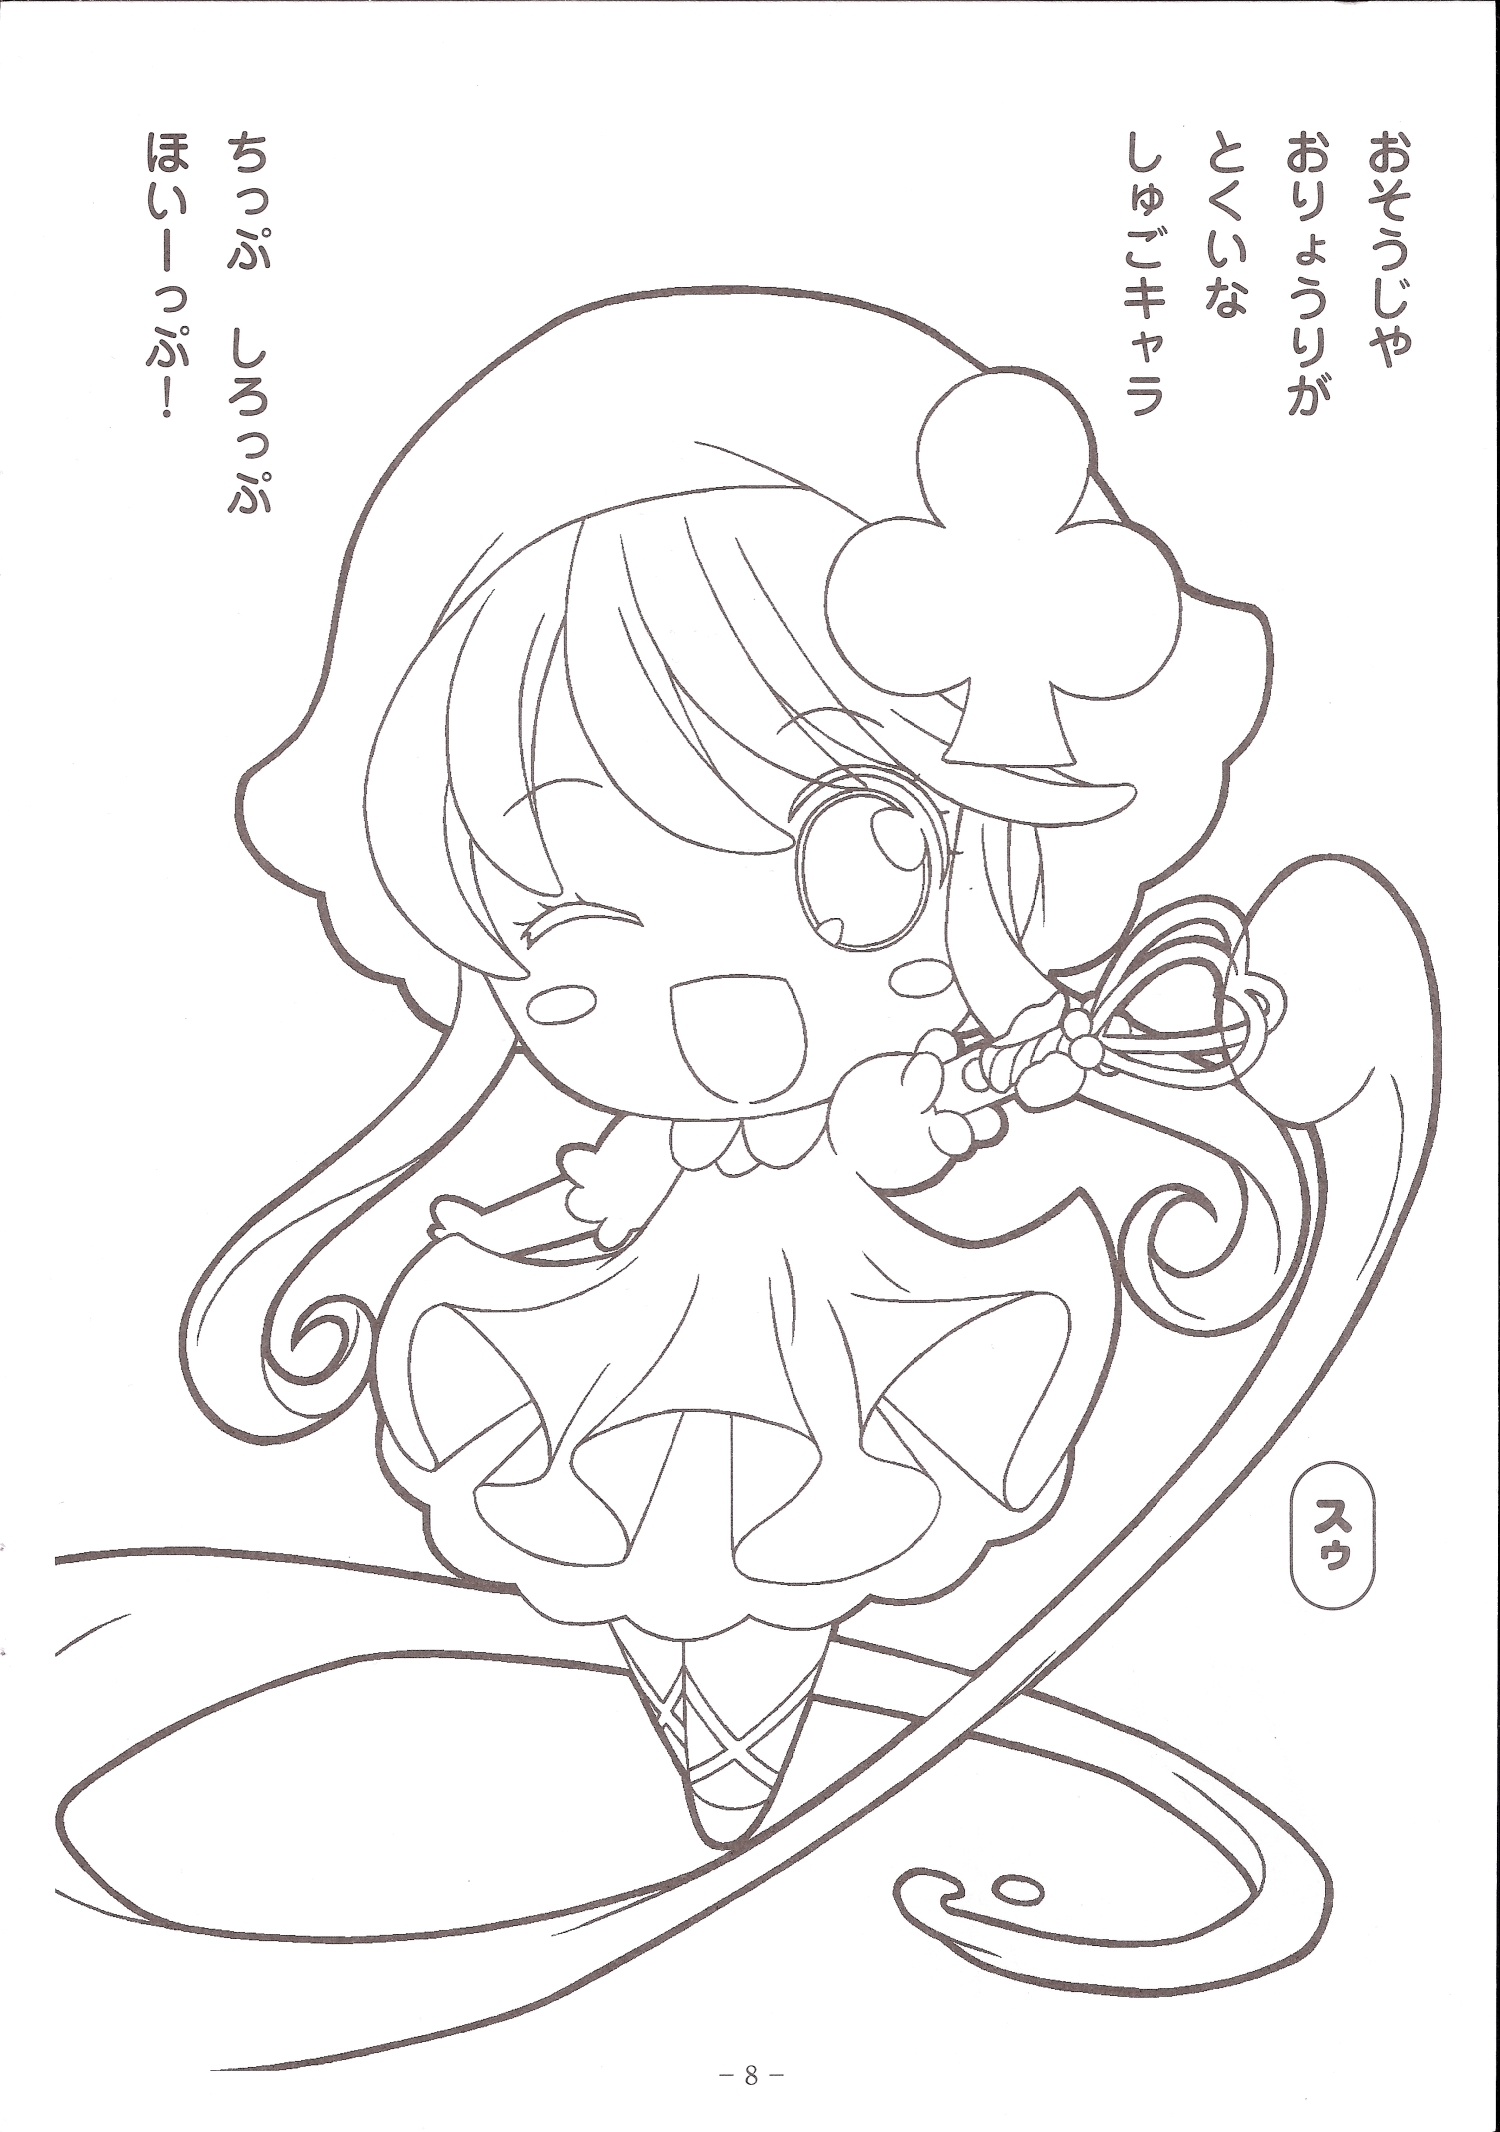 Undertale Chara Coloring Pages